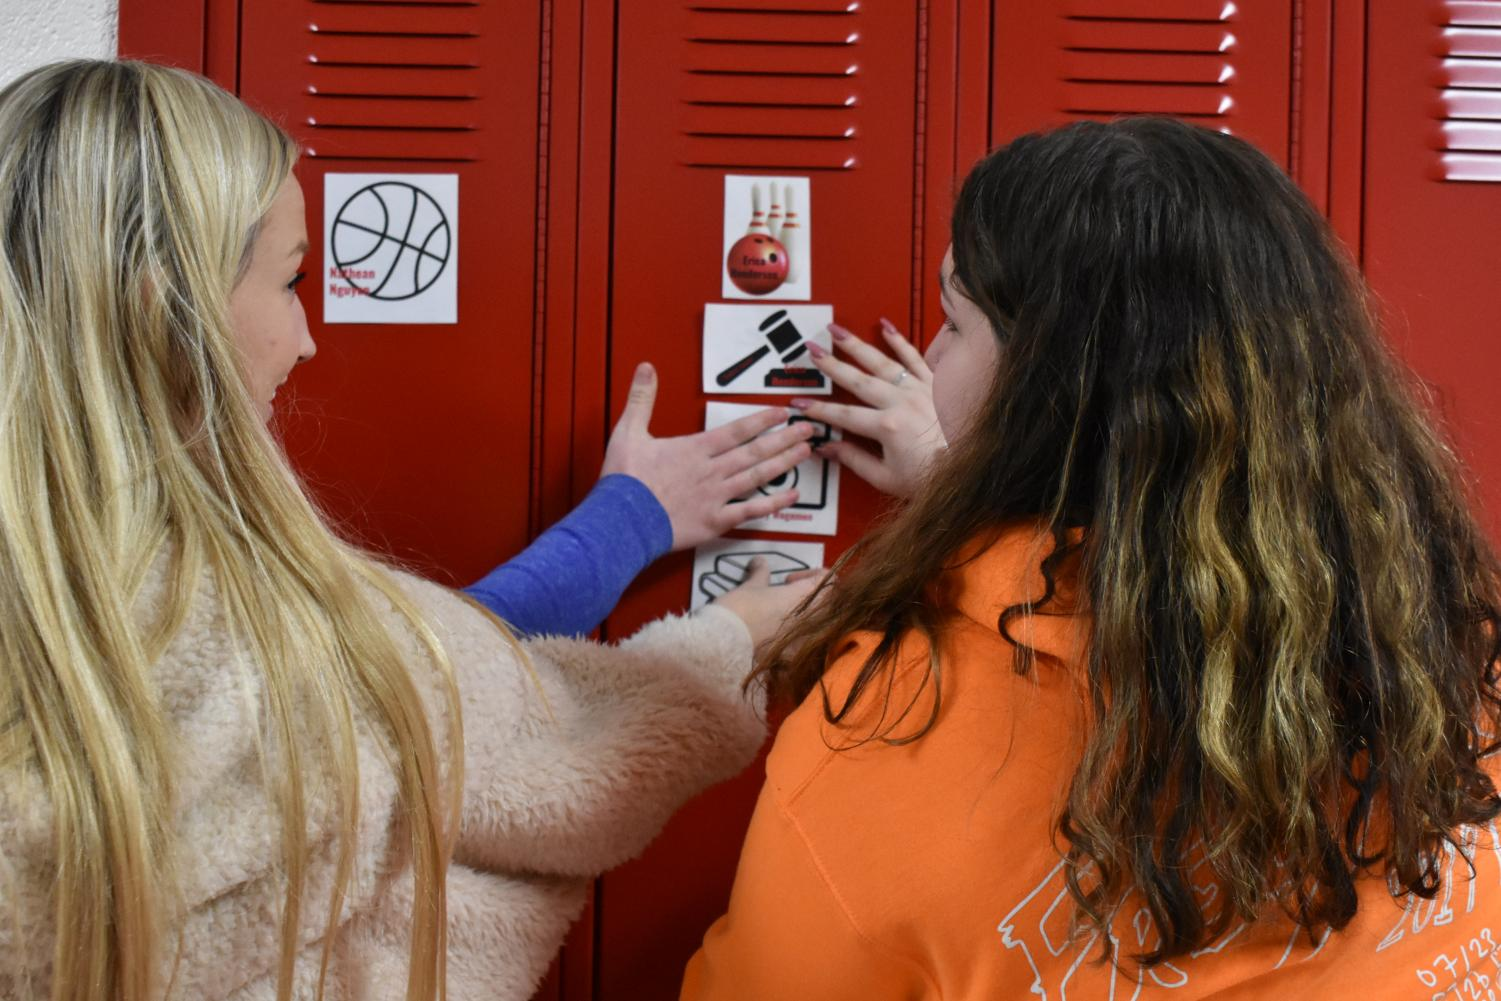 Student Senate members and seniors Erica Henderson, Hailey Hansen, and Gillian Collins put up locker tags to recognize students in the building and involvement in clubs and sports.